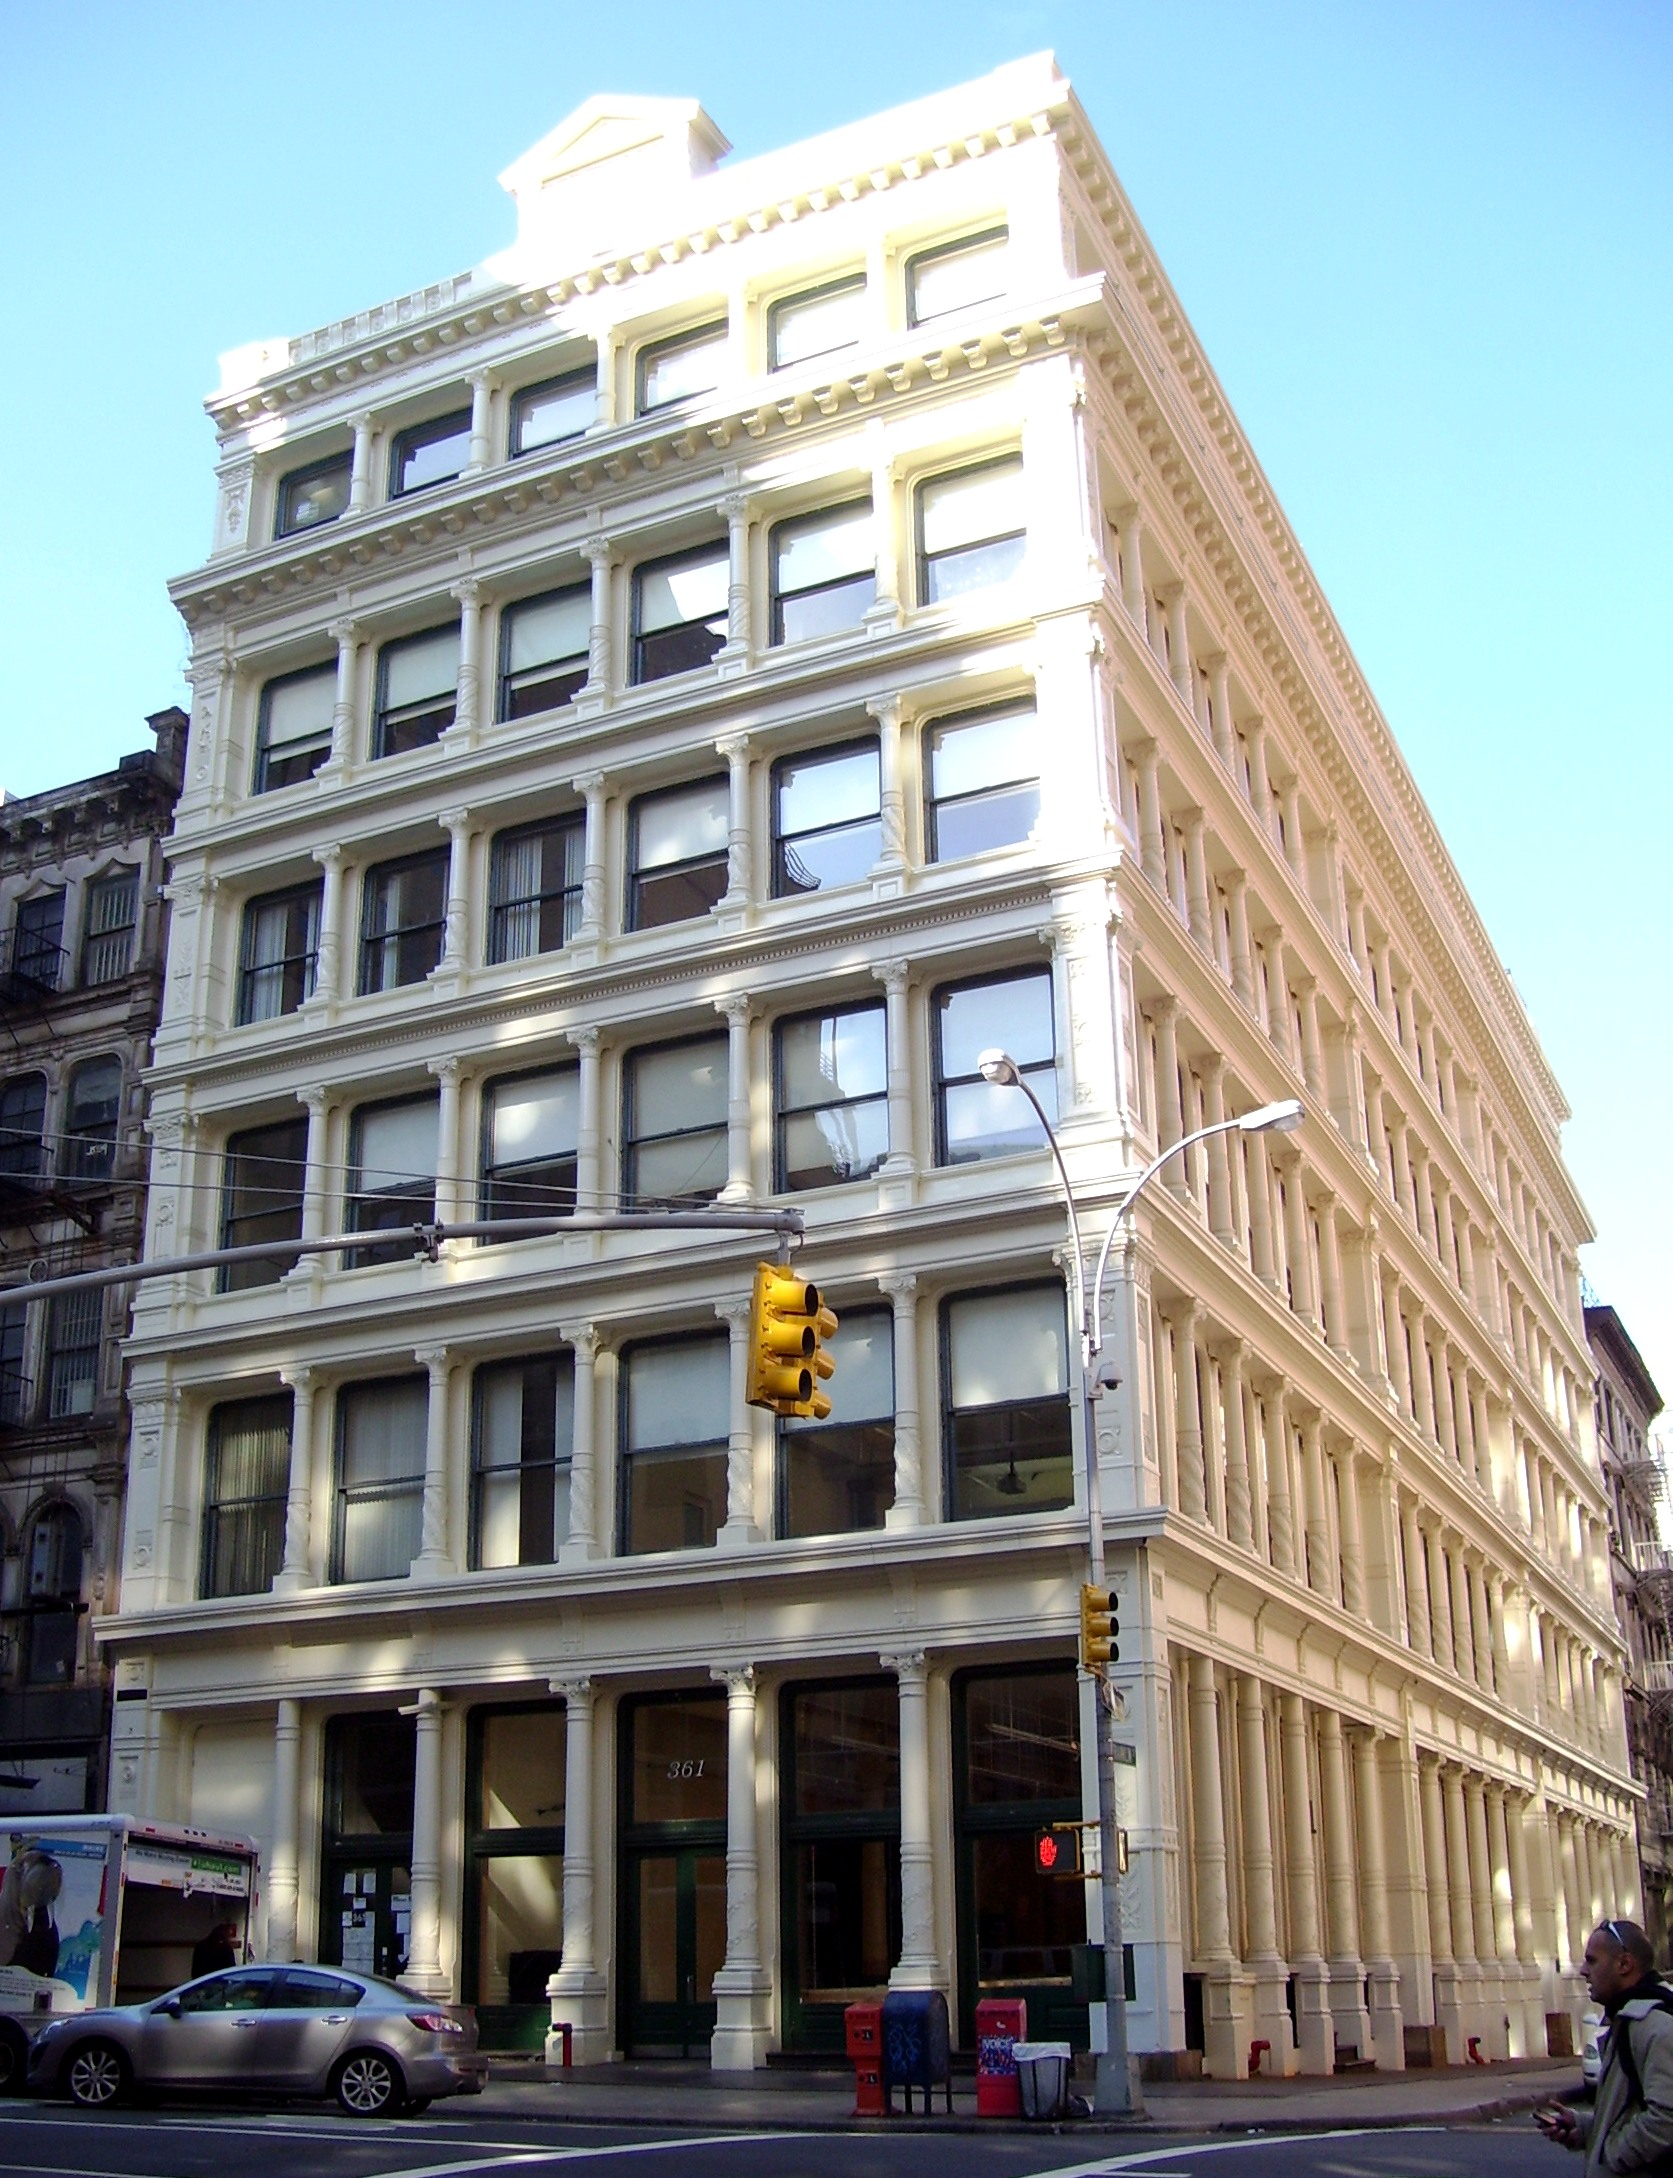 File:James S. White Building 361 Broadway.jpg - Wikimedia Commons